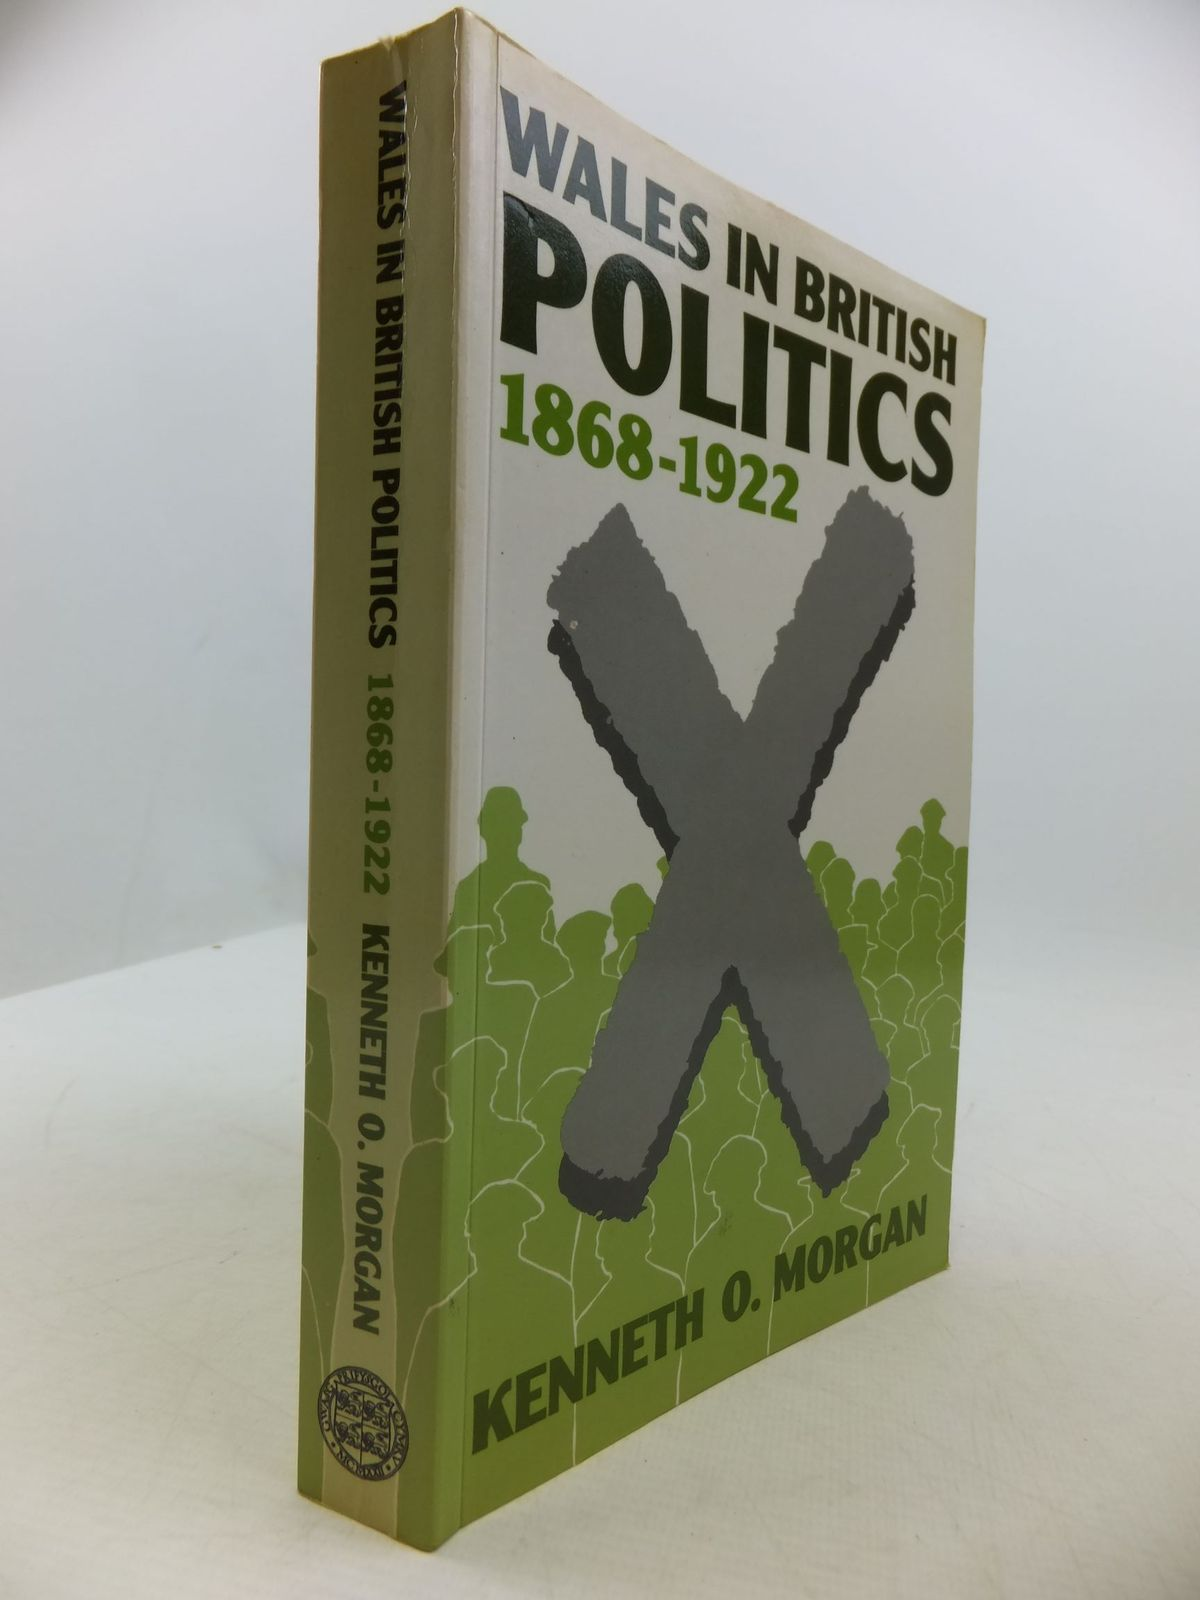 Photo of WALES IN BRITISH POLITICS 1868-1922 written by Morgan, Kenneth O. published by University of Wales (STOCK CODE: 1708357)  for sale by Stella & Rose's Books